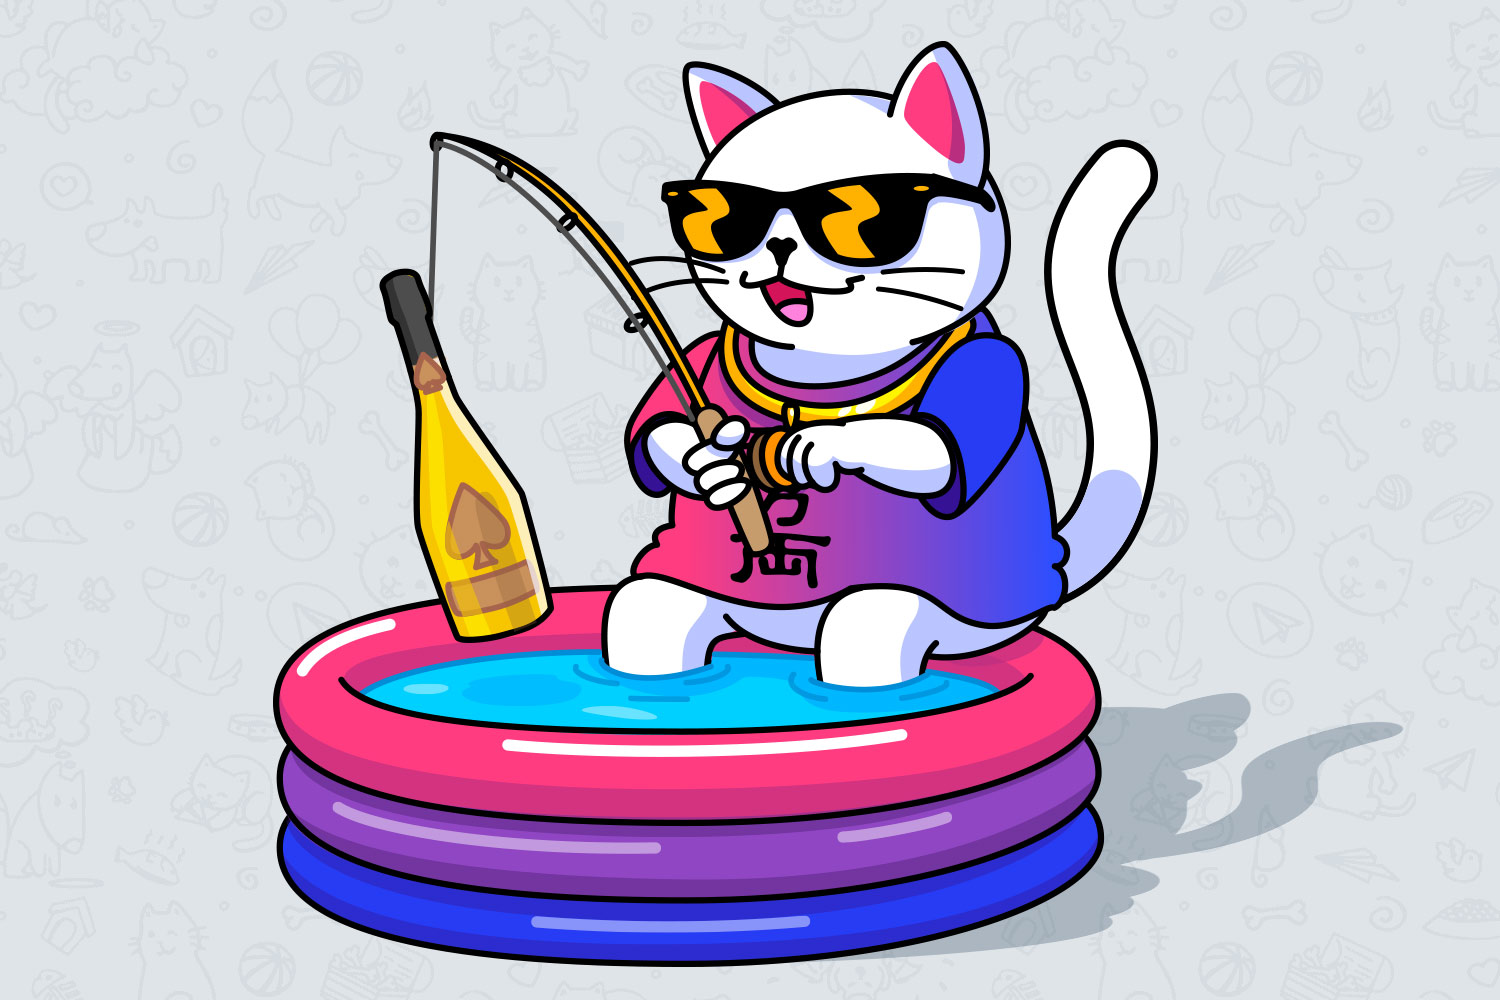 The cat with a fishing rod in a pool, the cat wearing glasses. Unight mobile app mascot.